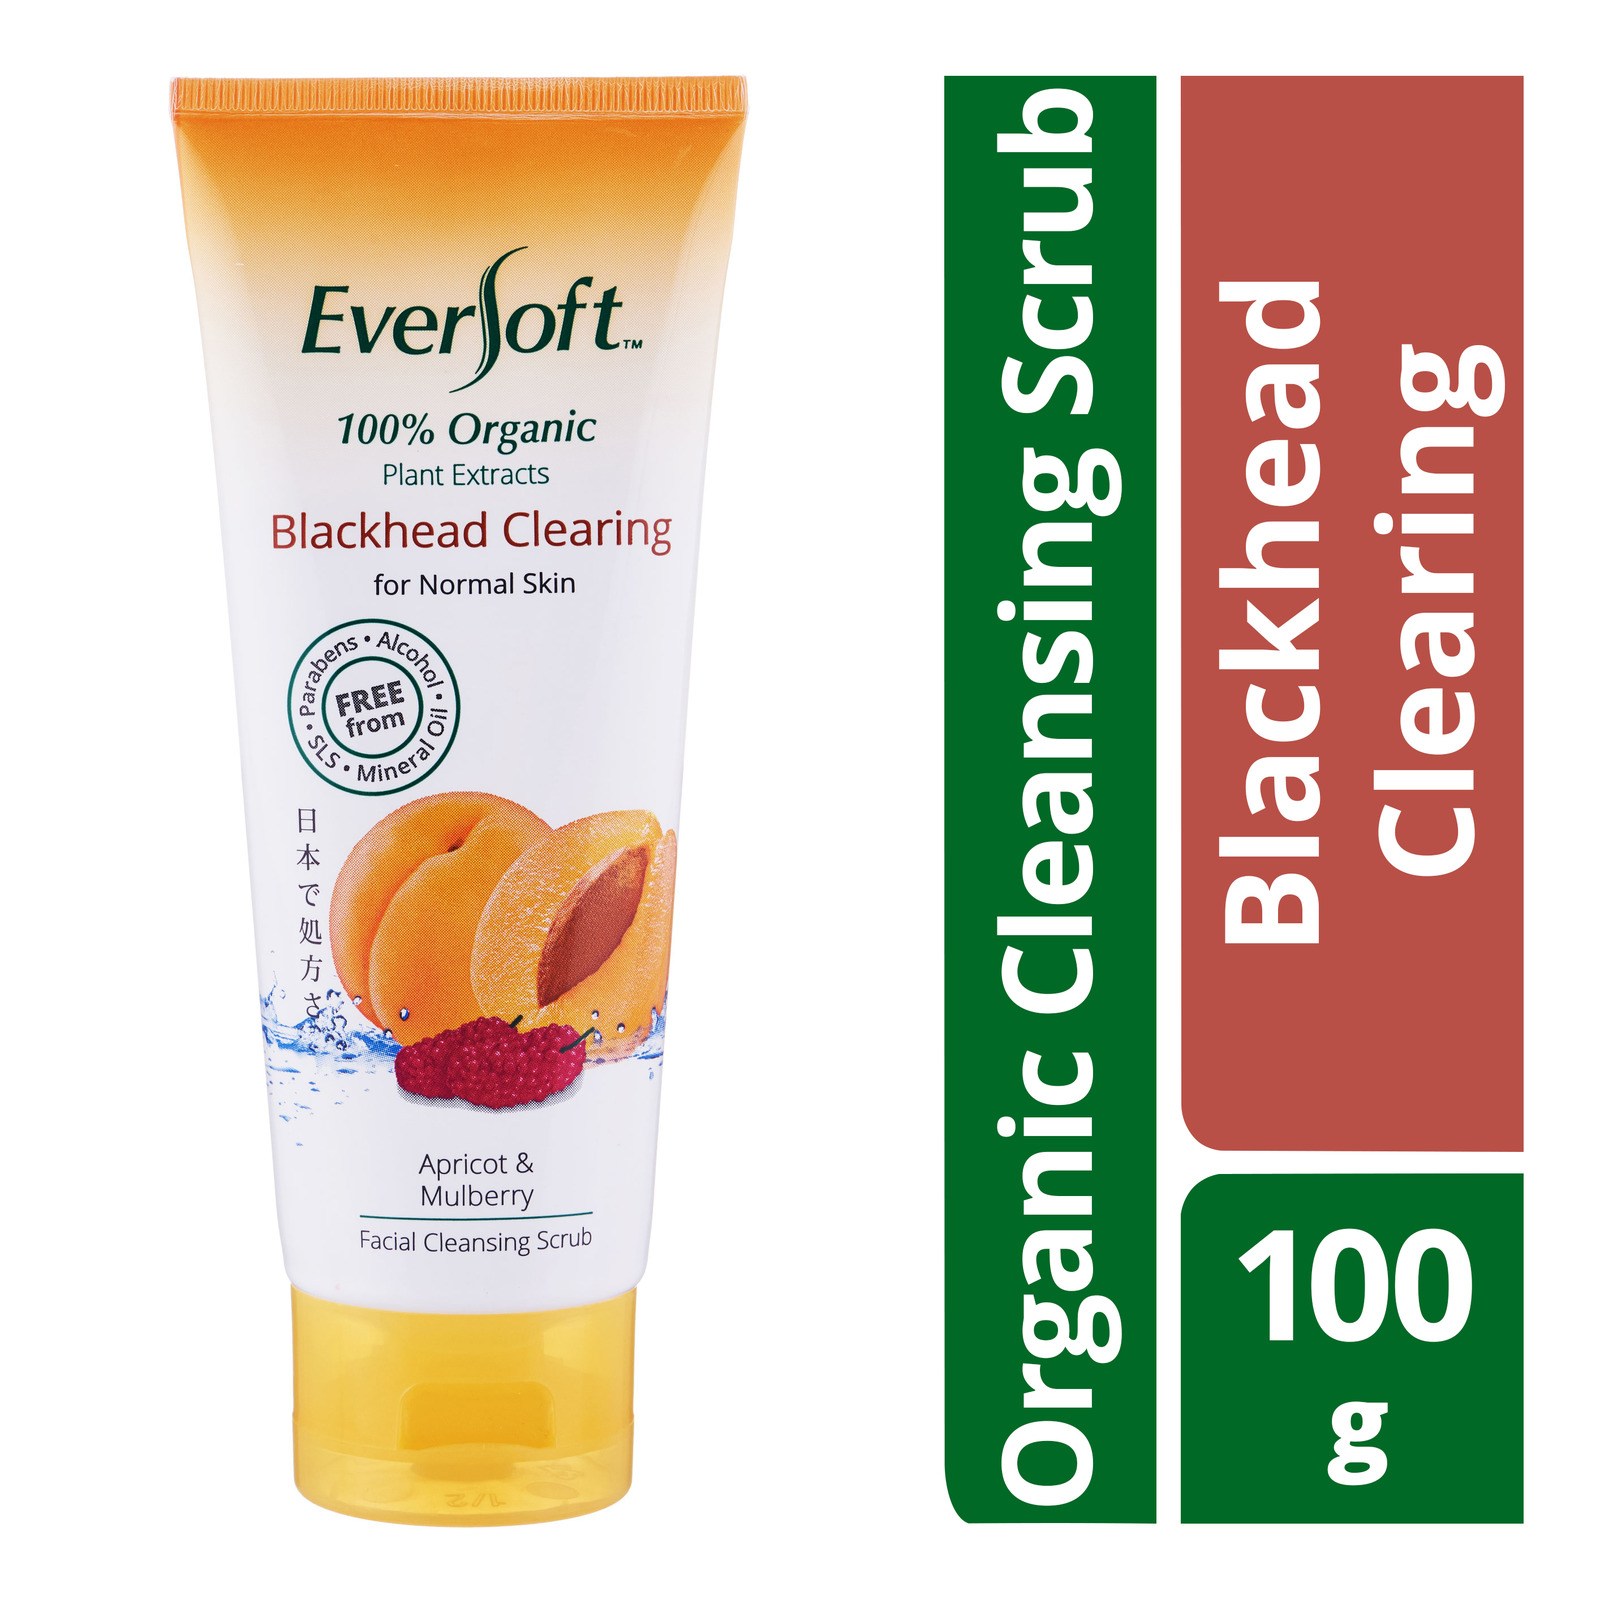 Eversoft Organic Cleansing Scrub - Blackhead Clearing